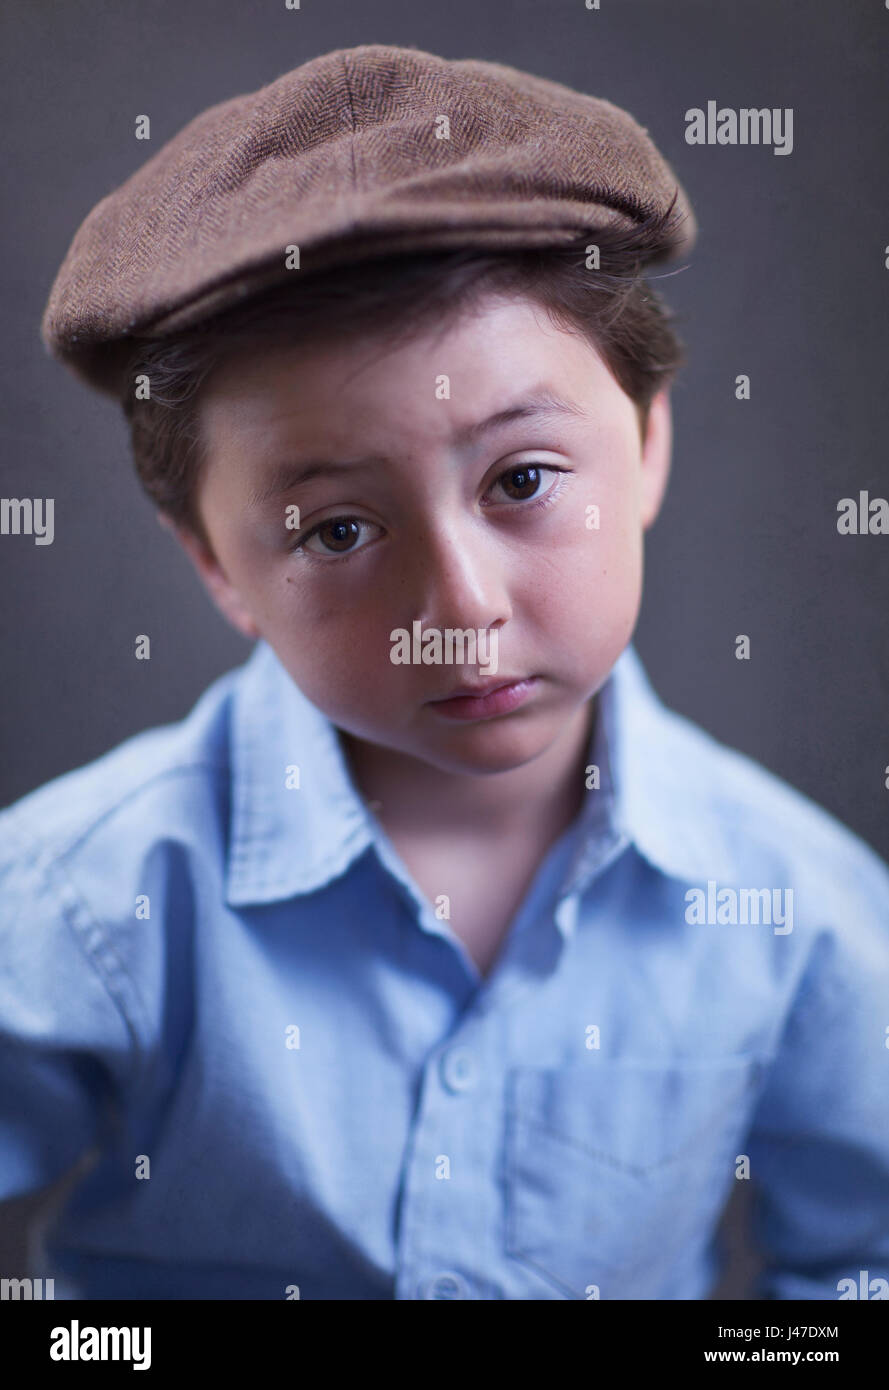 ff5a0db58 Cute and serious looking multi-racial Asian Caucasian little boy ...